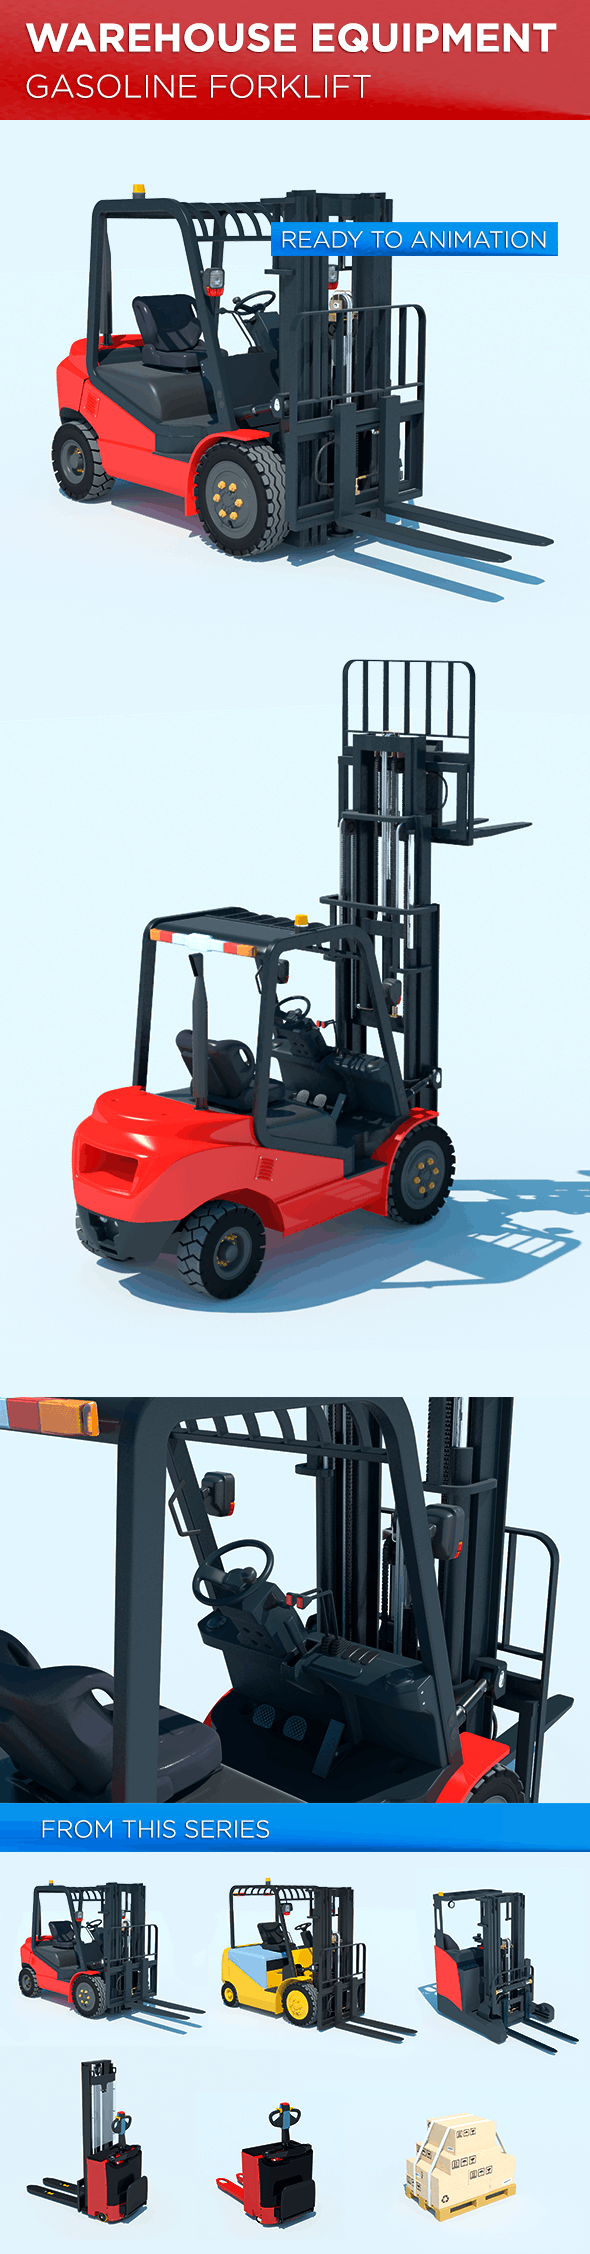 Warehouse Equipment: Gasoline Forklift - 3DOcean Item for Sale